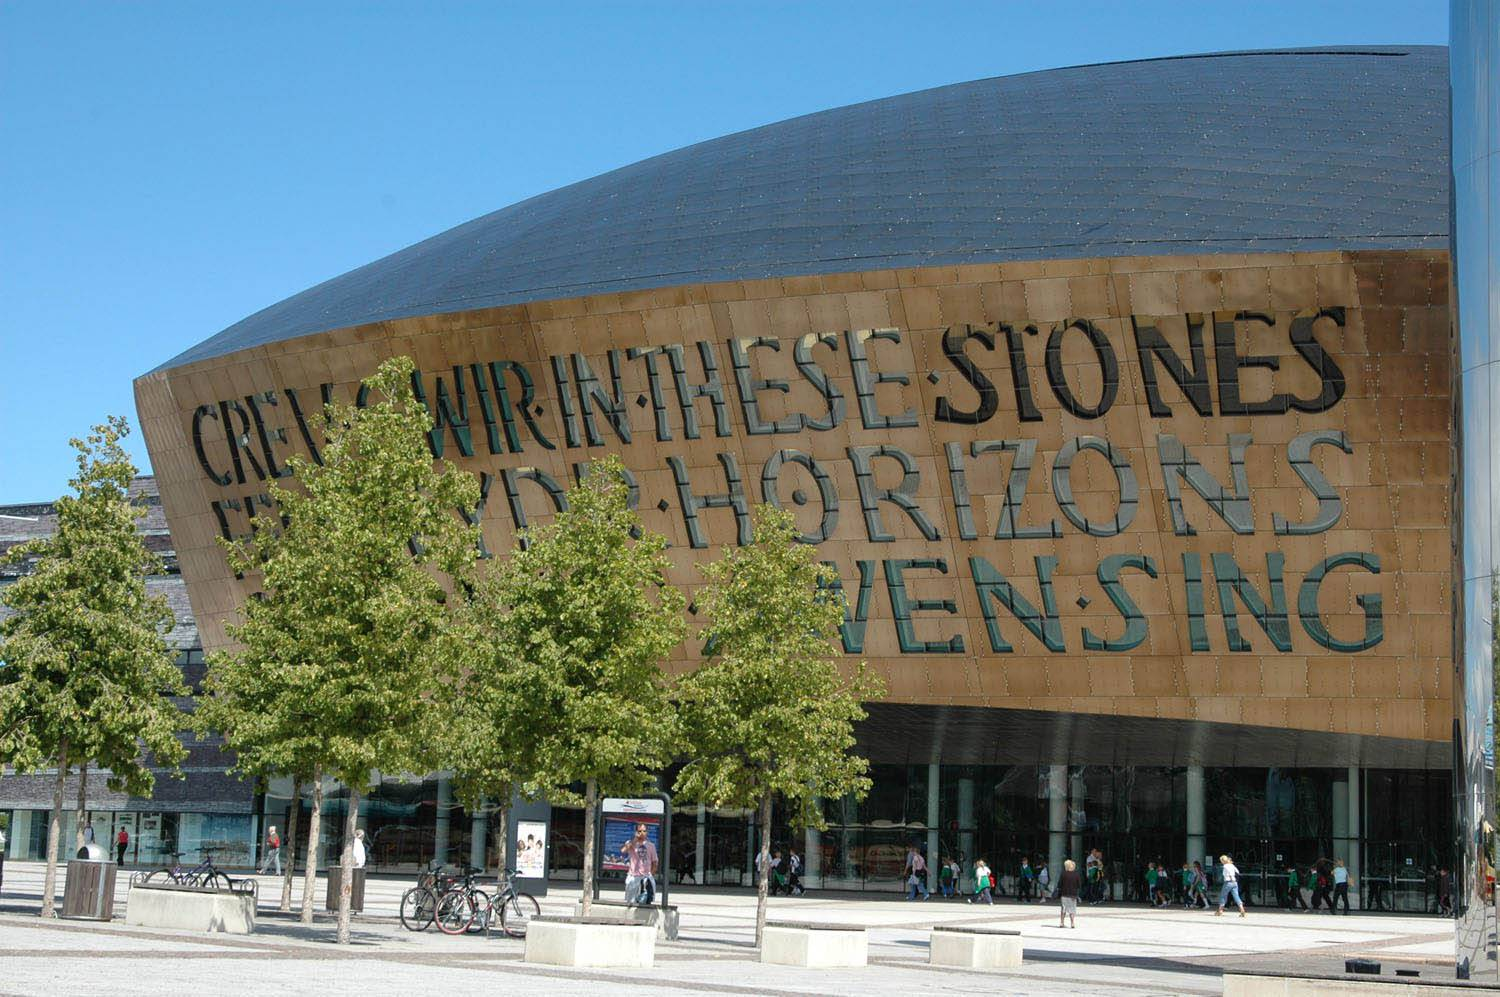 Wales Corporate Travel Conferences, Wales Millennium Center, Cardiff, Wales